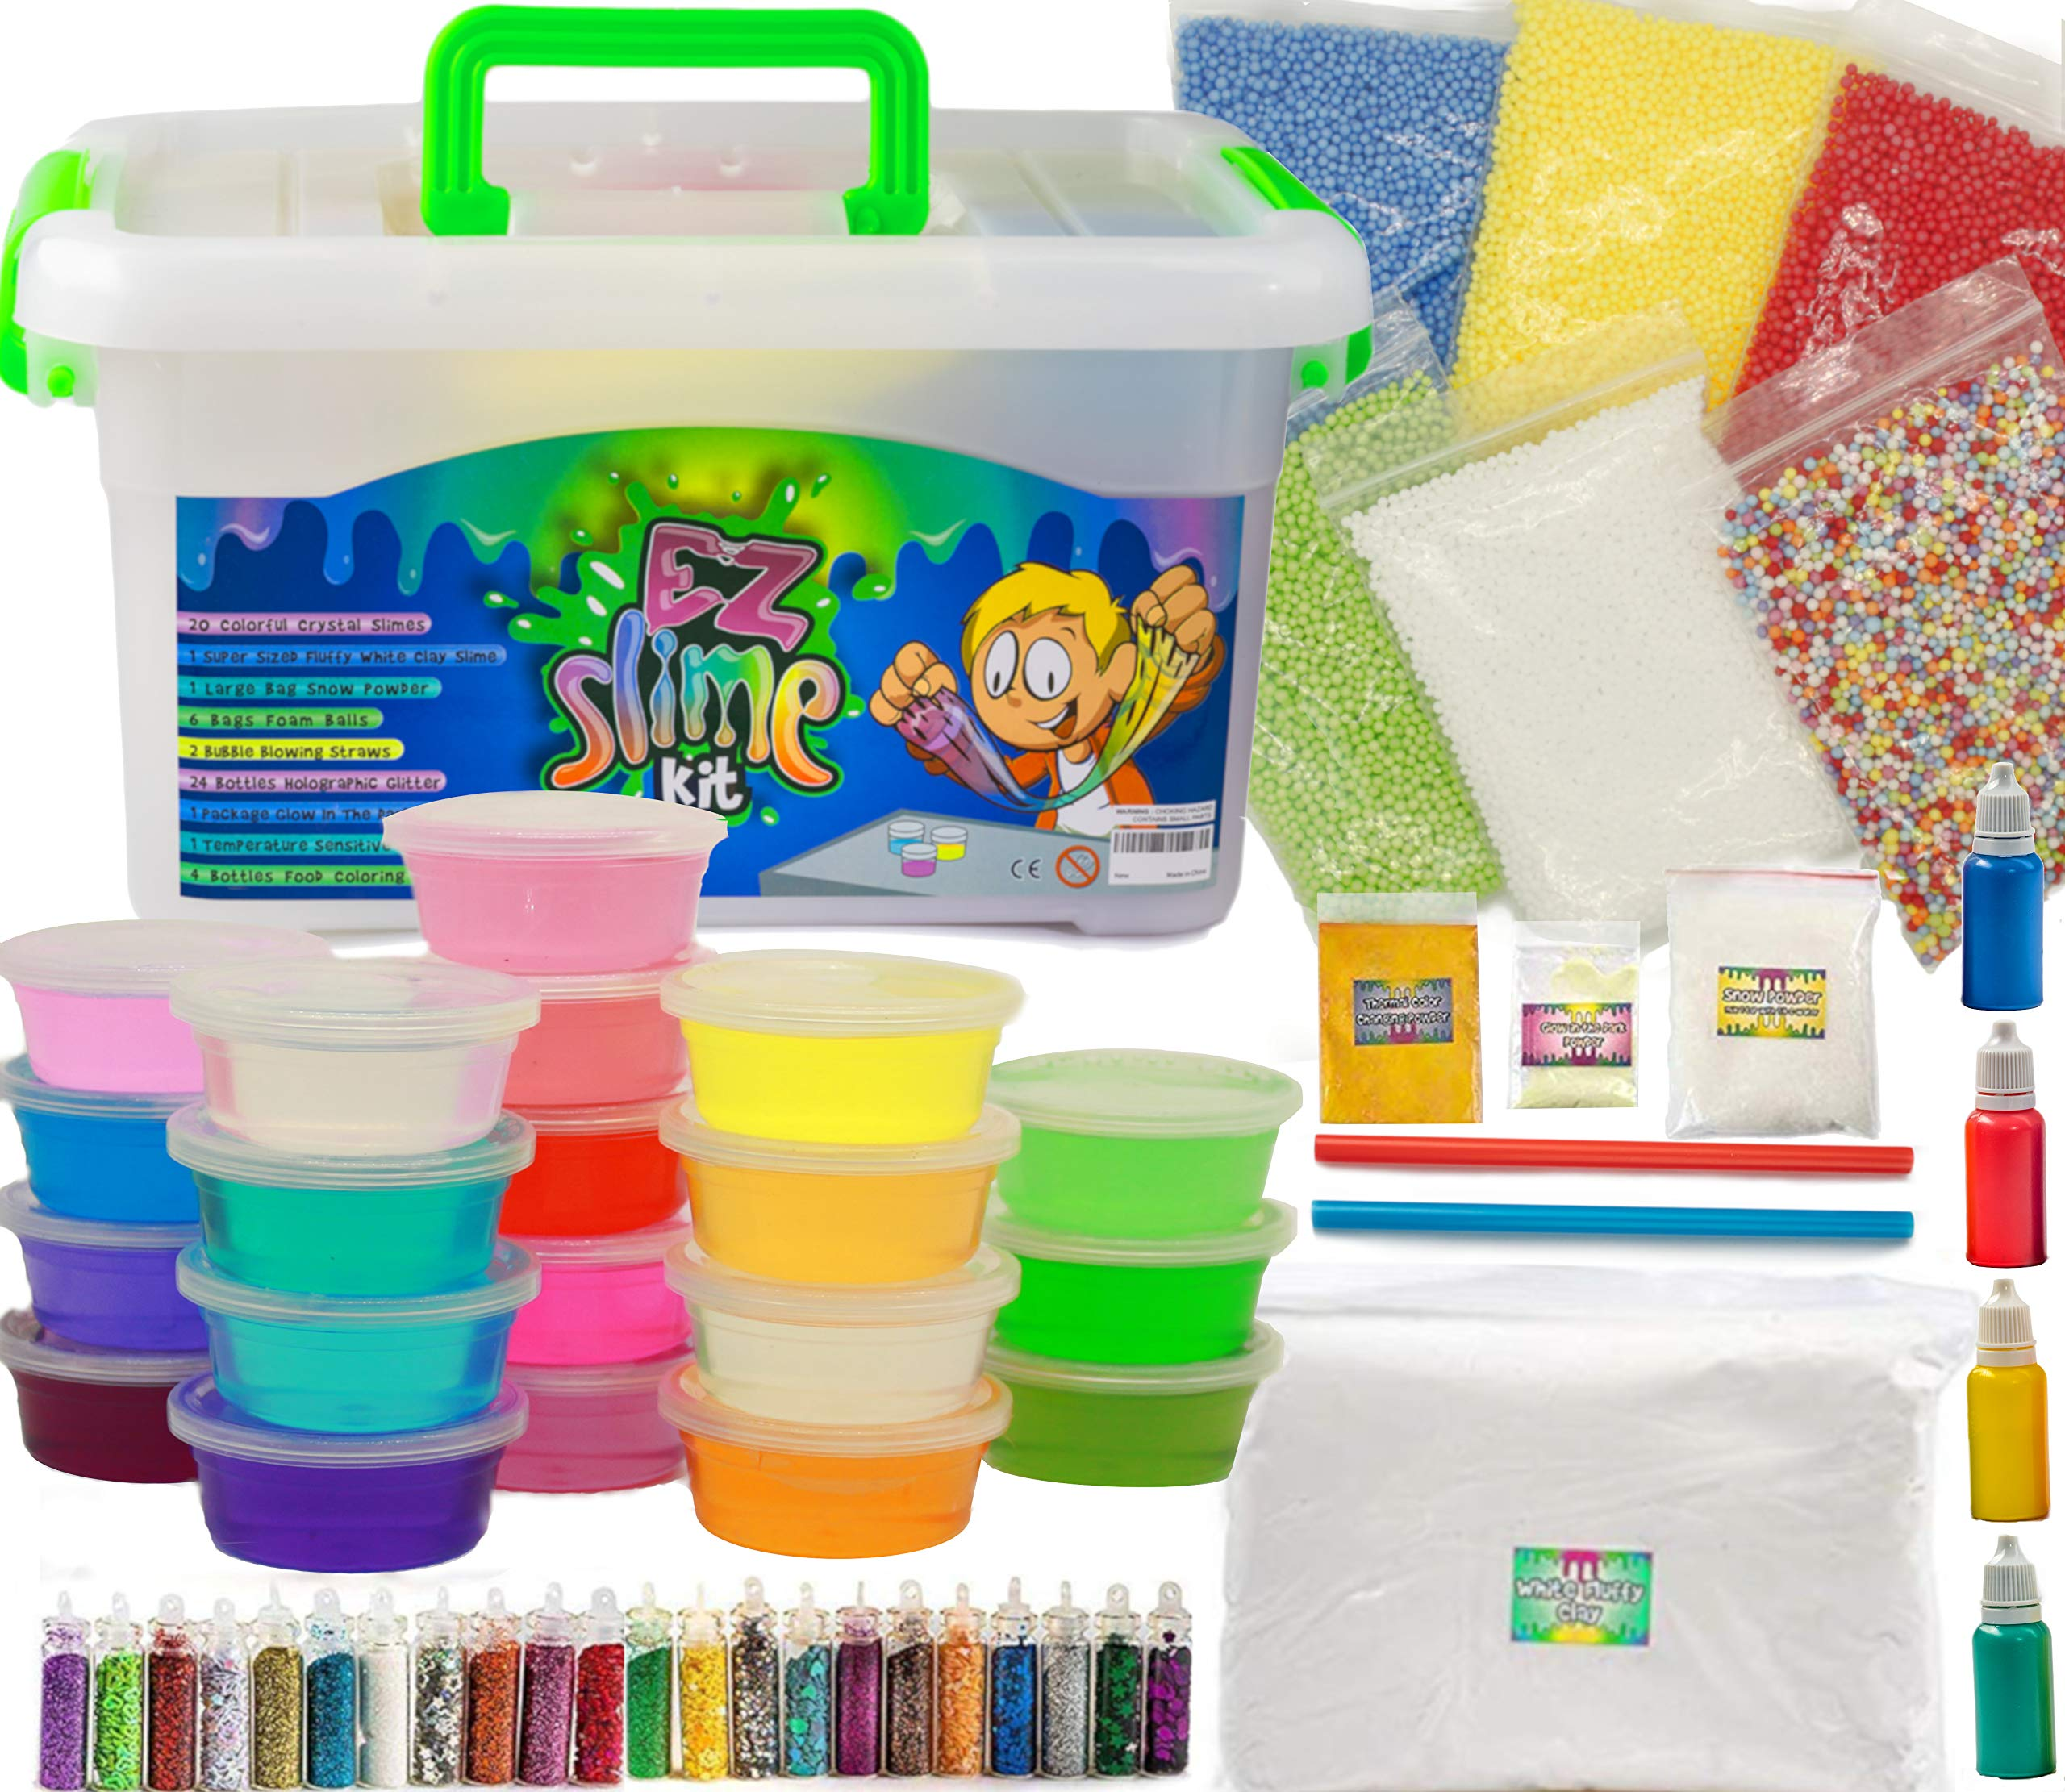 EZ Slime Kit- Boys Girls Everyone. Crystal Slime, Fluffy Clay Slime, Fake Snow, Glow Powder, Thermal Powder, Foam Beads, Glitter, Plus More. 60 Piece Kit. Over 3 Pounds by EZ Slime Kit